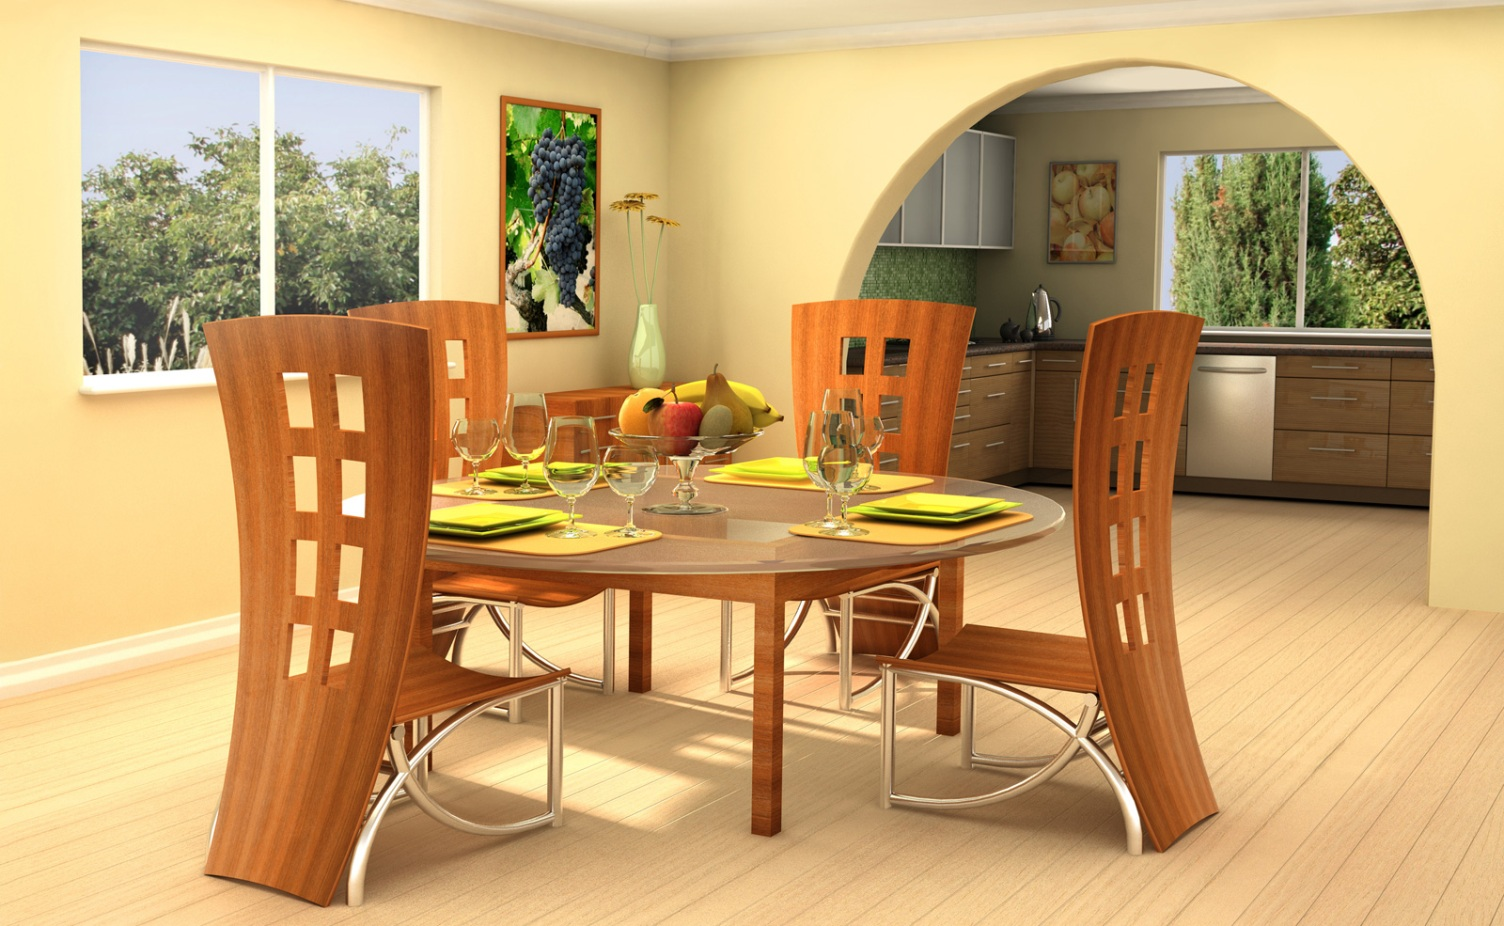 Go Creative And Pick Unique Dining Room Table And Chairs From 2017 Market D